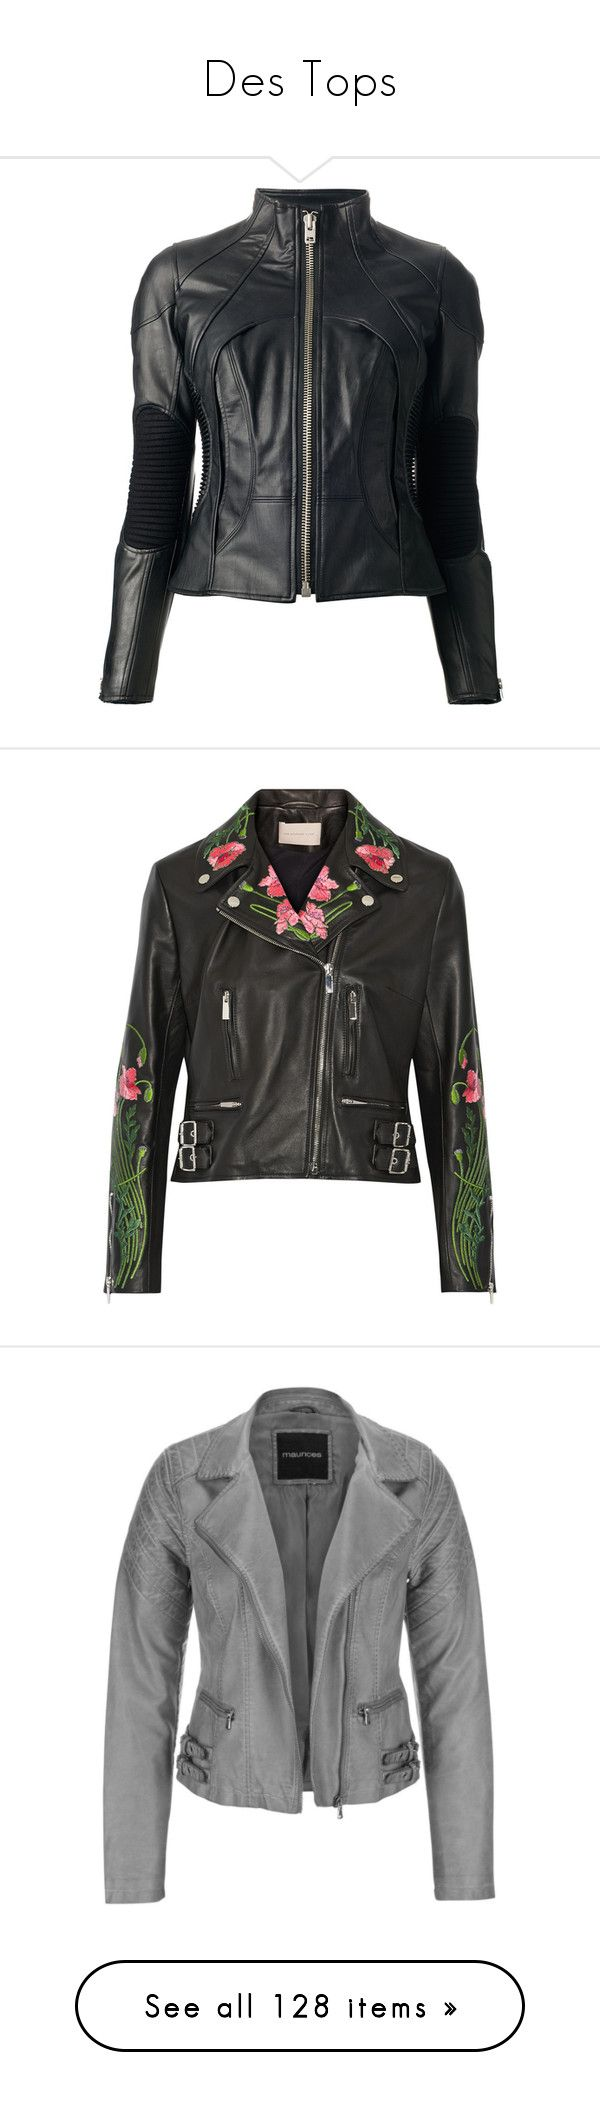 """""""Des Tops"""" by ramble-on-my-wayward-cherry-pie ❤ liked on Polyvore featuring outerwear, jackets, leather jacket, tops, black, 100 leather jacket, zipper leather jacket, zip jacket, genuine leather jackets and elbow patch jacket"""